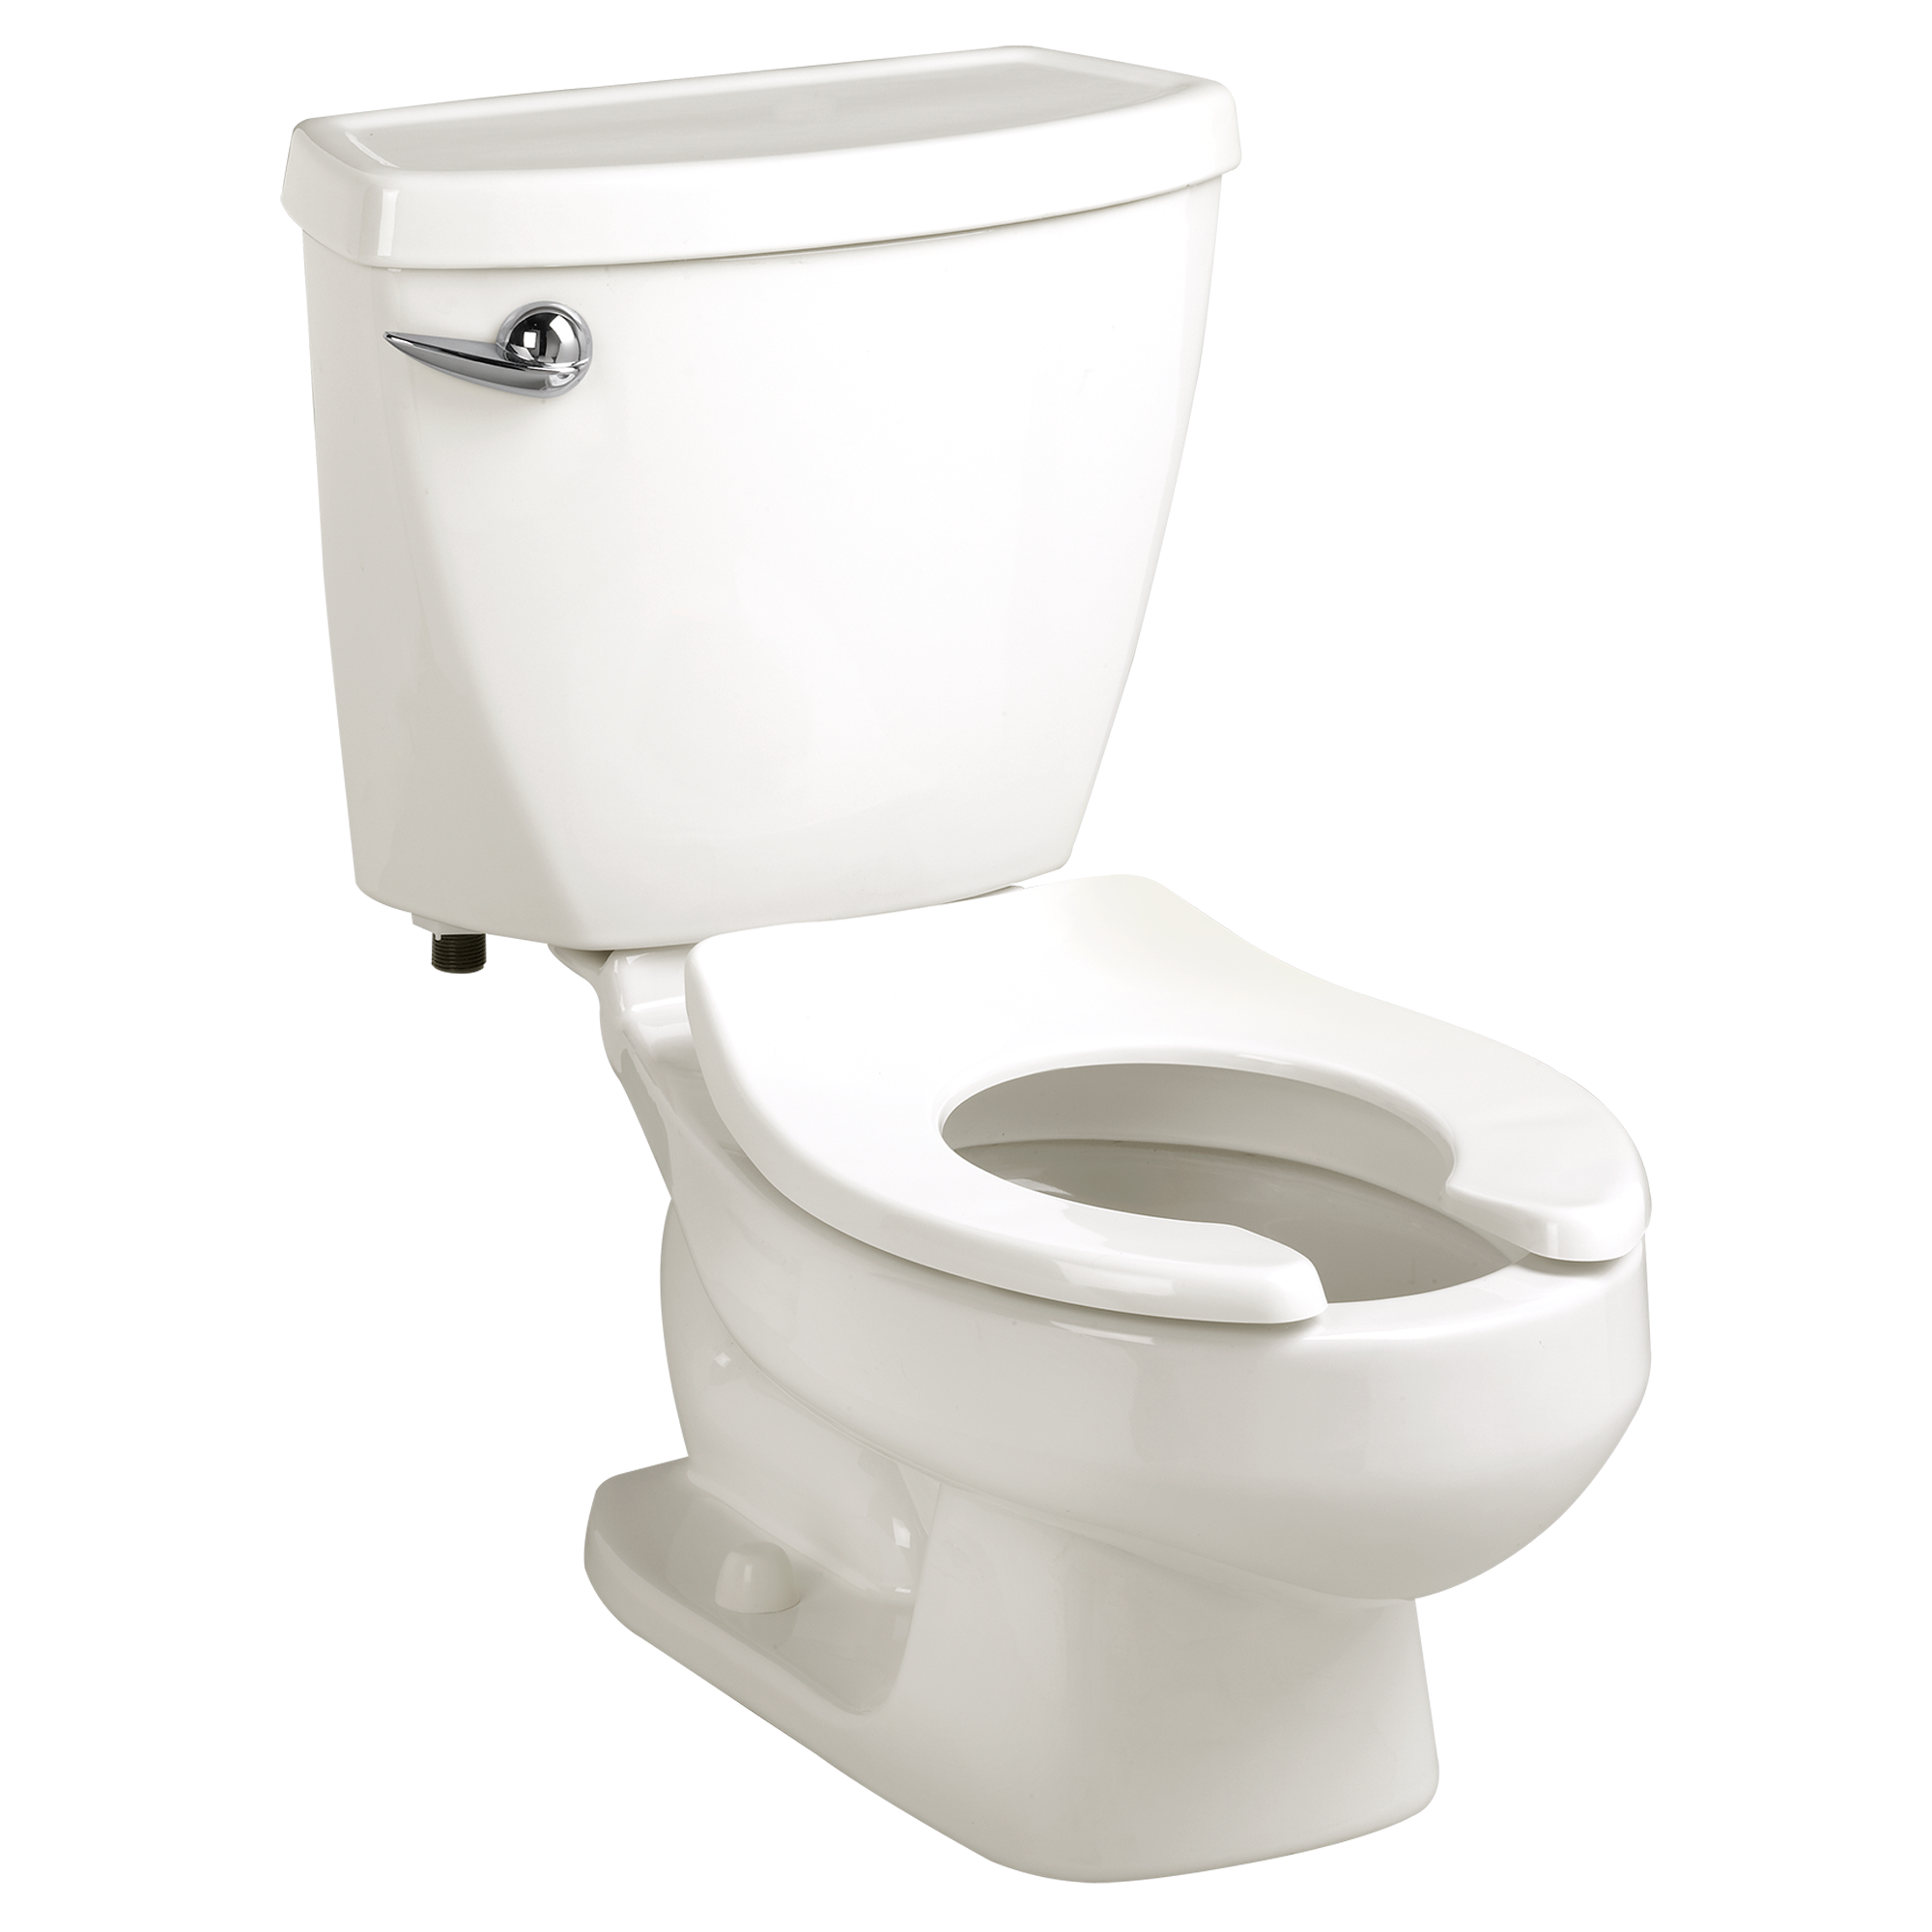 Toilet top view png. Baby devoro gpf flowise